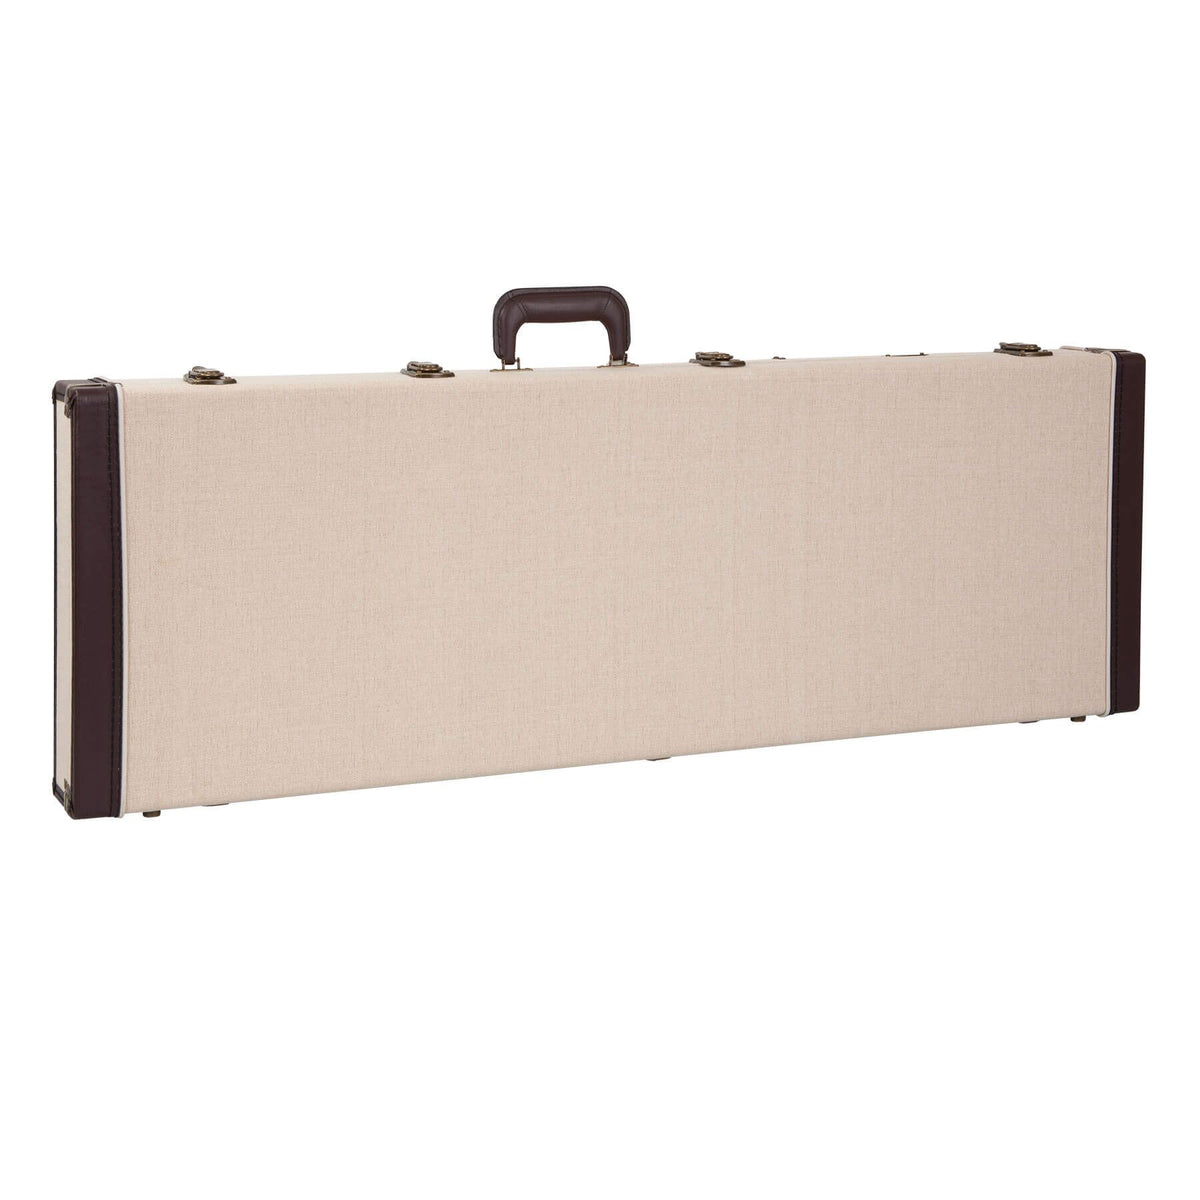 Gator Cases Journeyman Bass Guitar Case for Fender American Standard Jazz Bass, Jazz Bass V Electric Bass Guitars